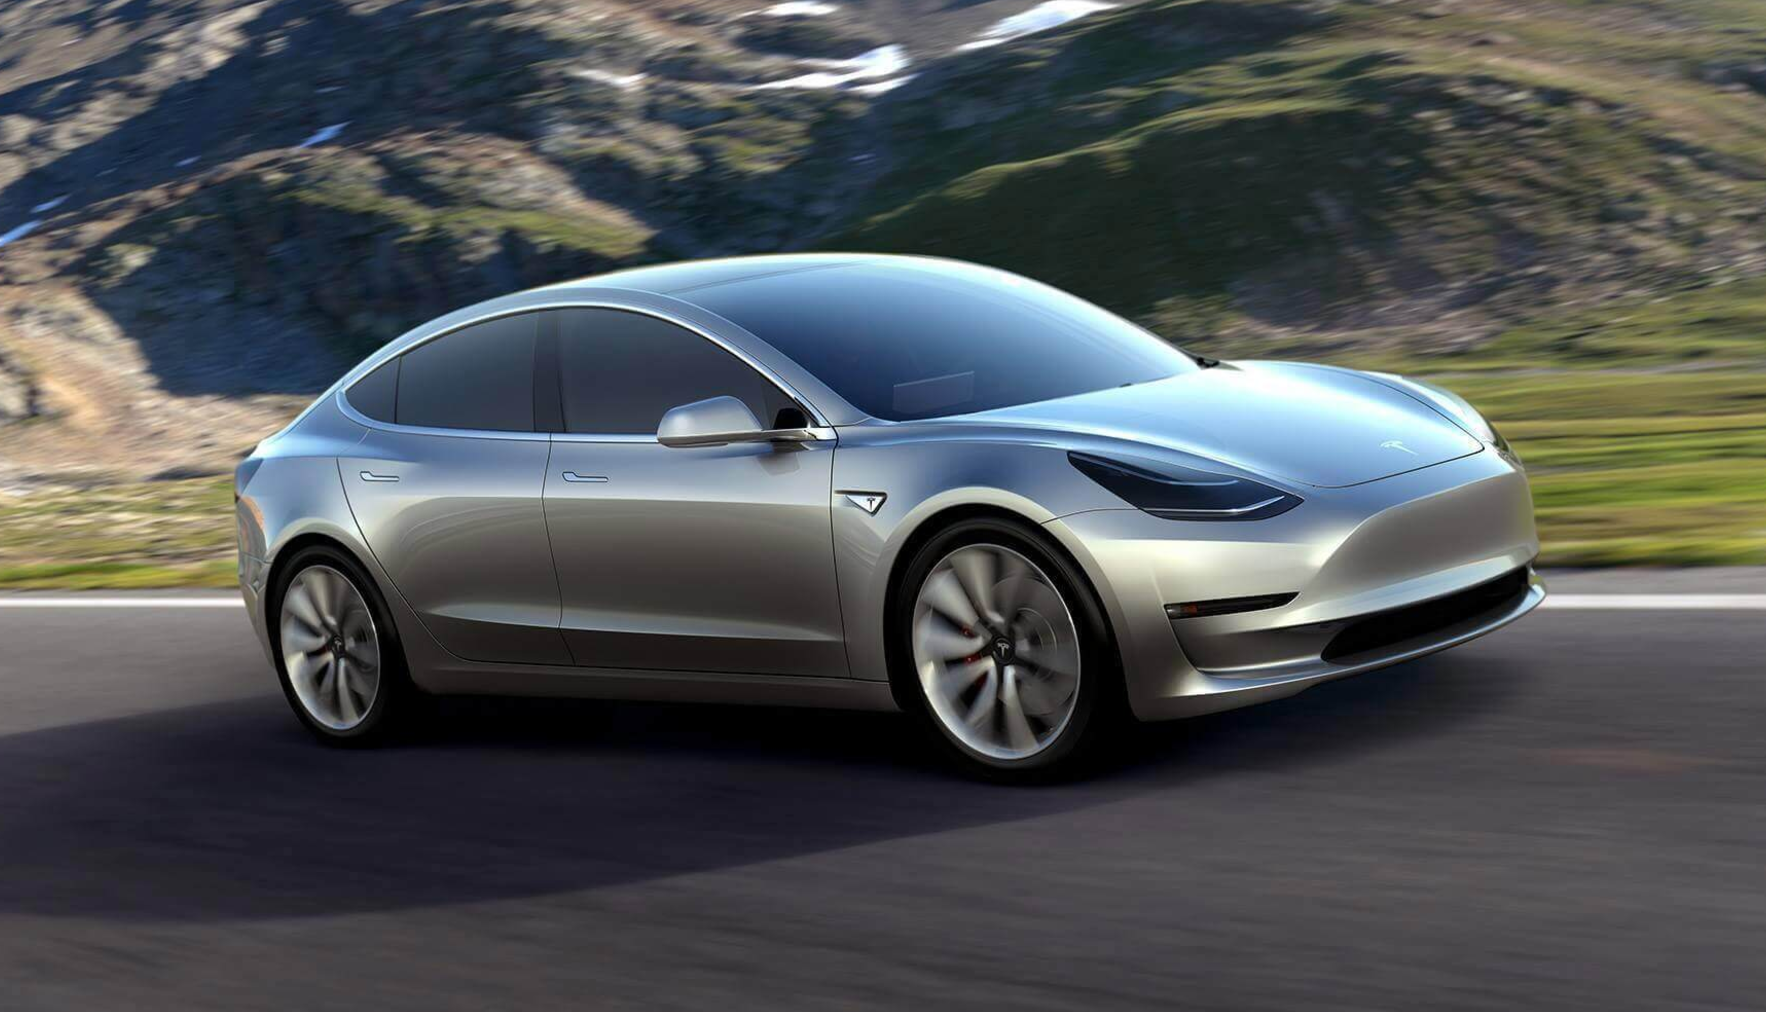 A prototype mockup of the Model 3